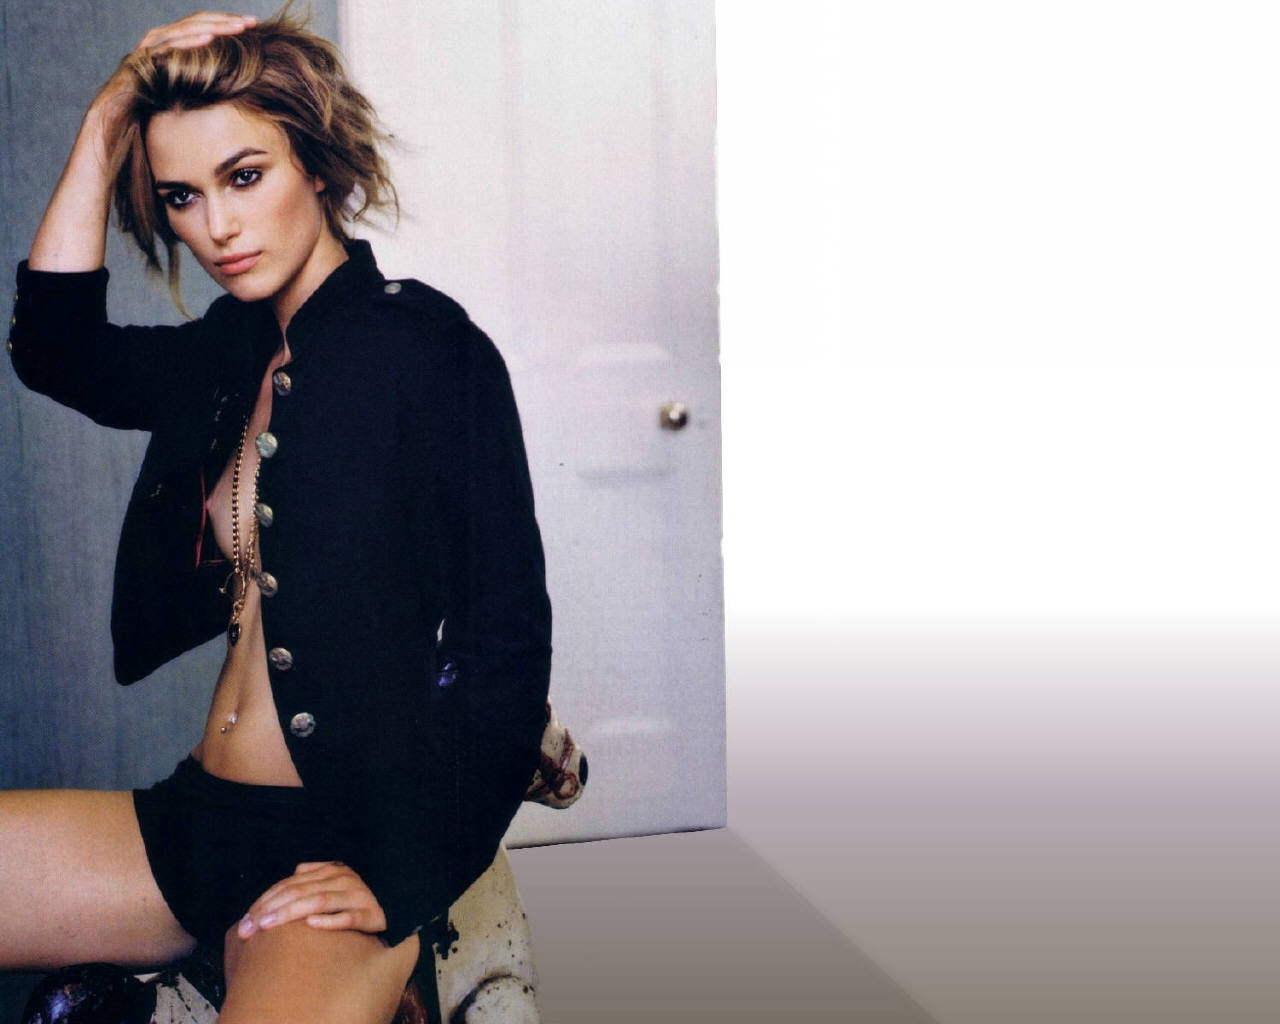 FHM Top 50 Sexiest Women (Year 2006) p01 - 50 Wallpapers ... Keira Knightley